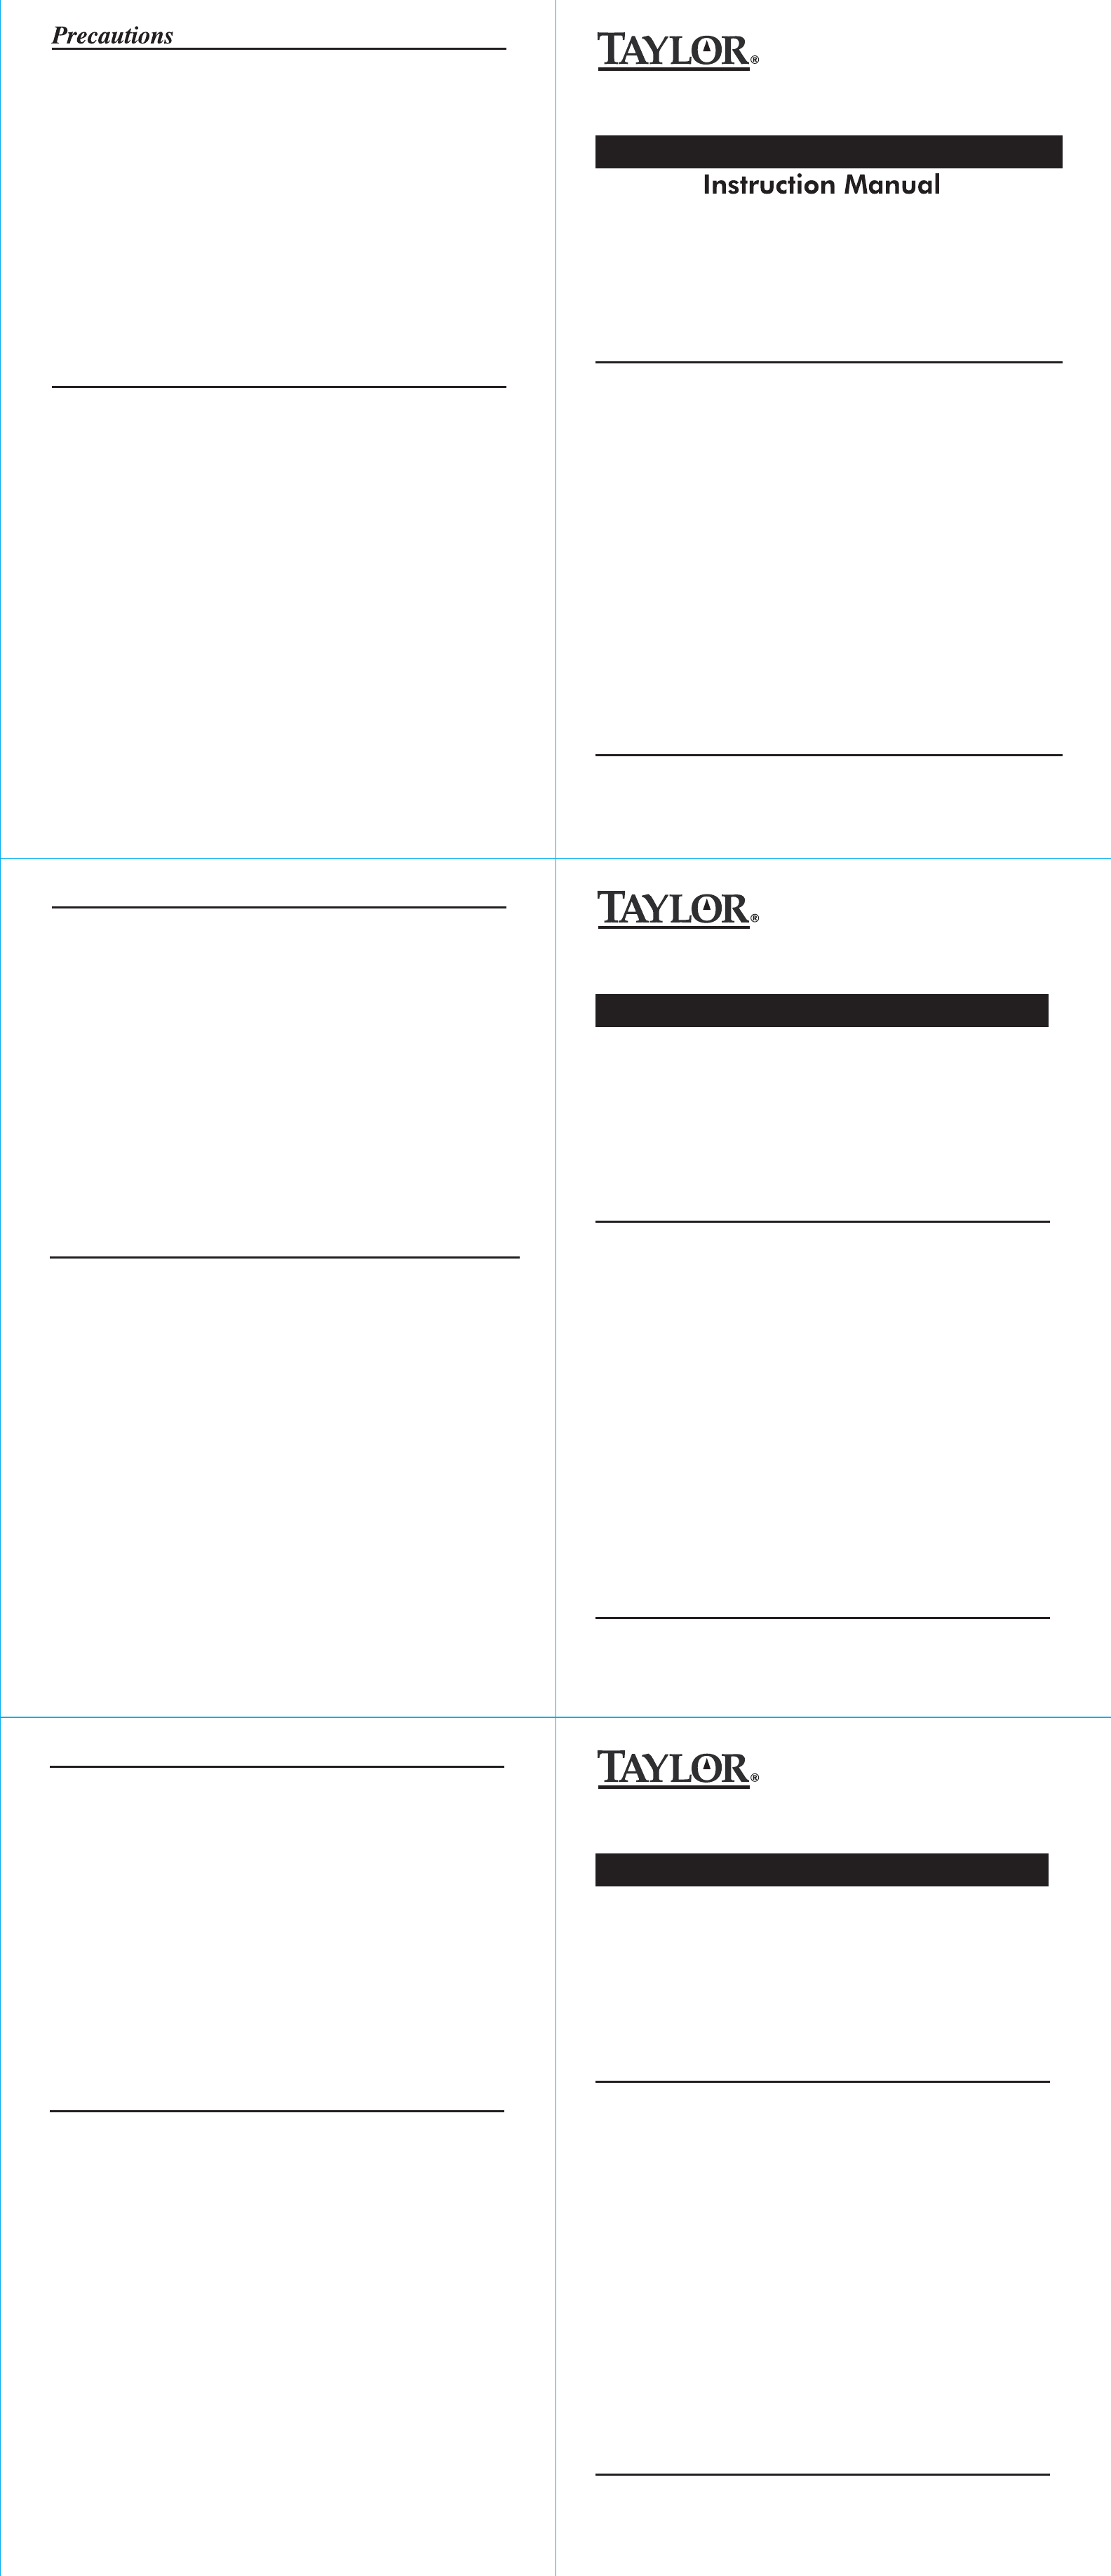 Taylor Model 60 Parts Schematic - Block And Schematic Diagrams •